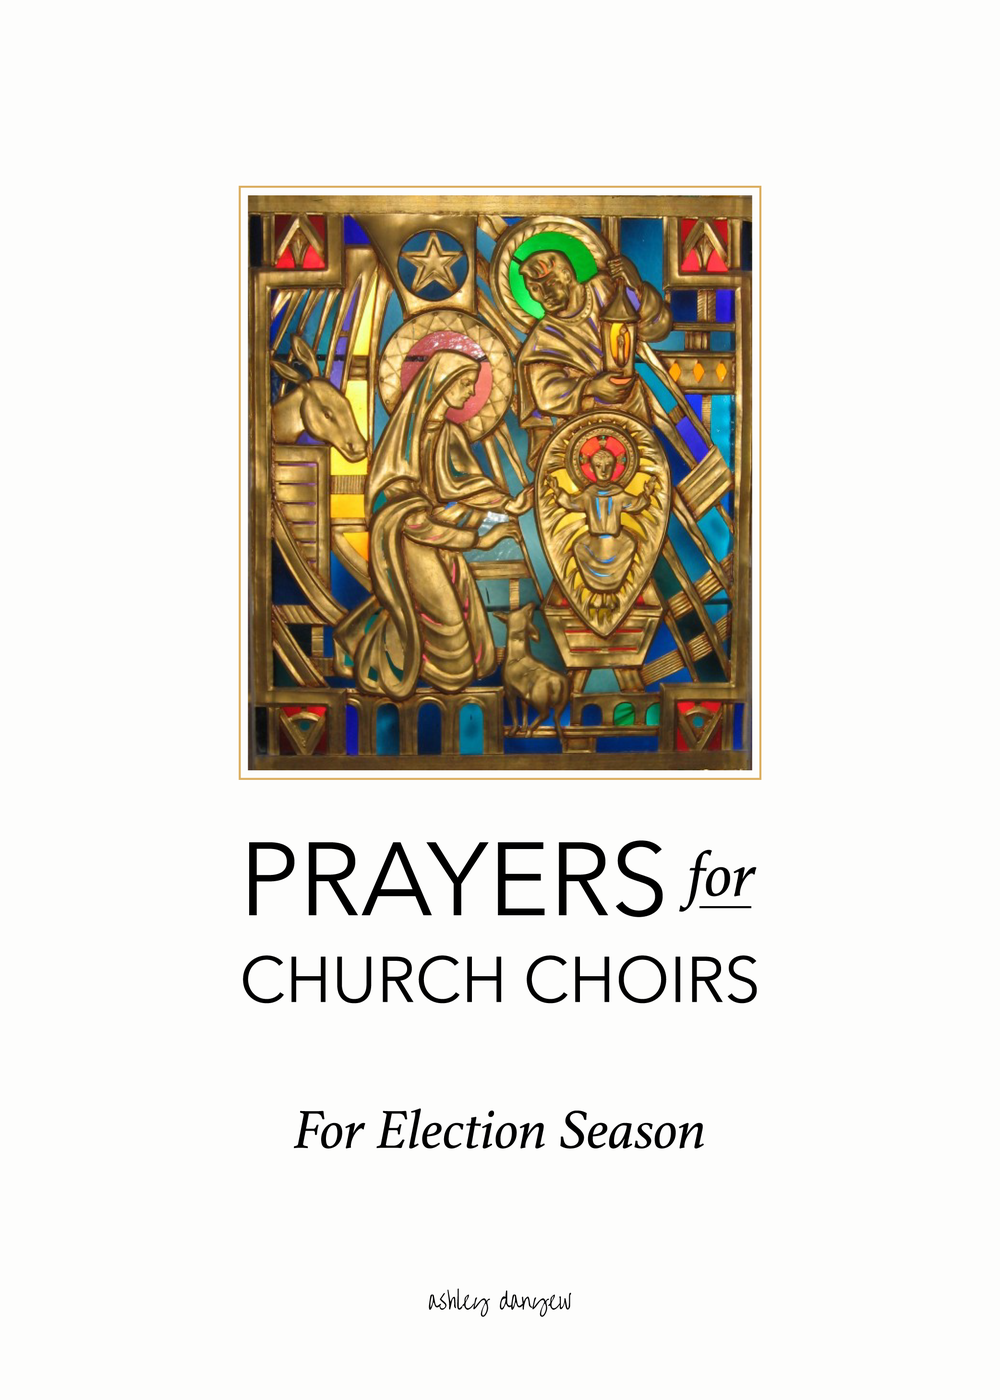 Copy of Prayers for Church Choirs: For Election Season